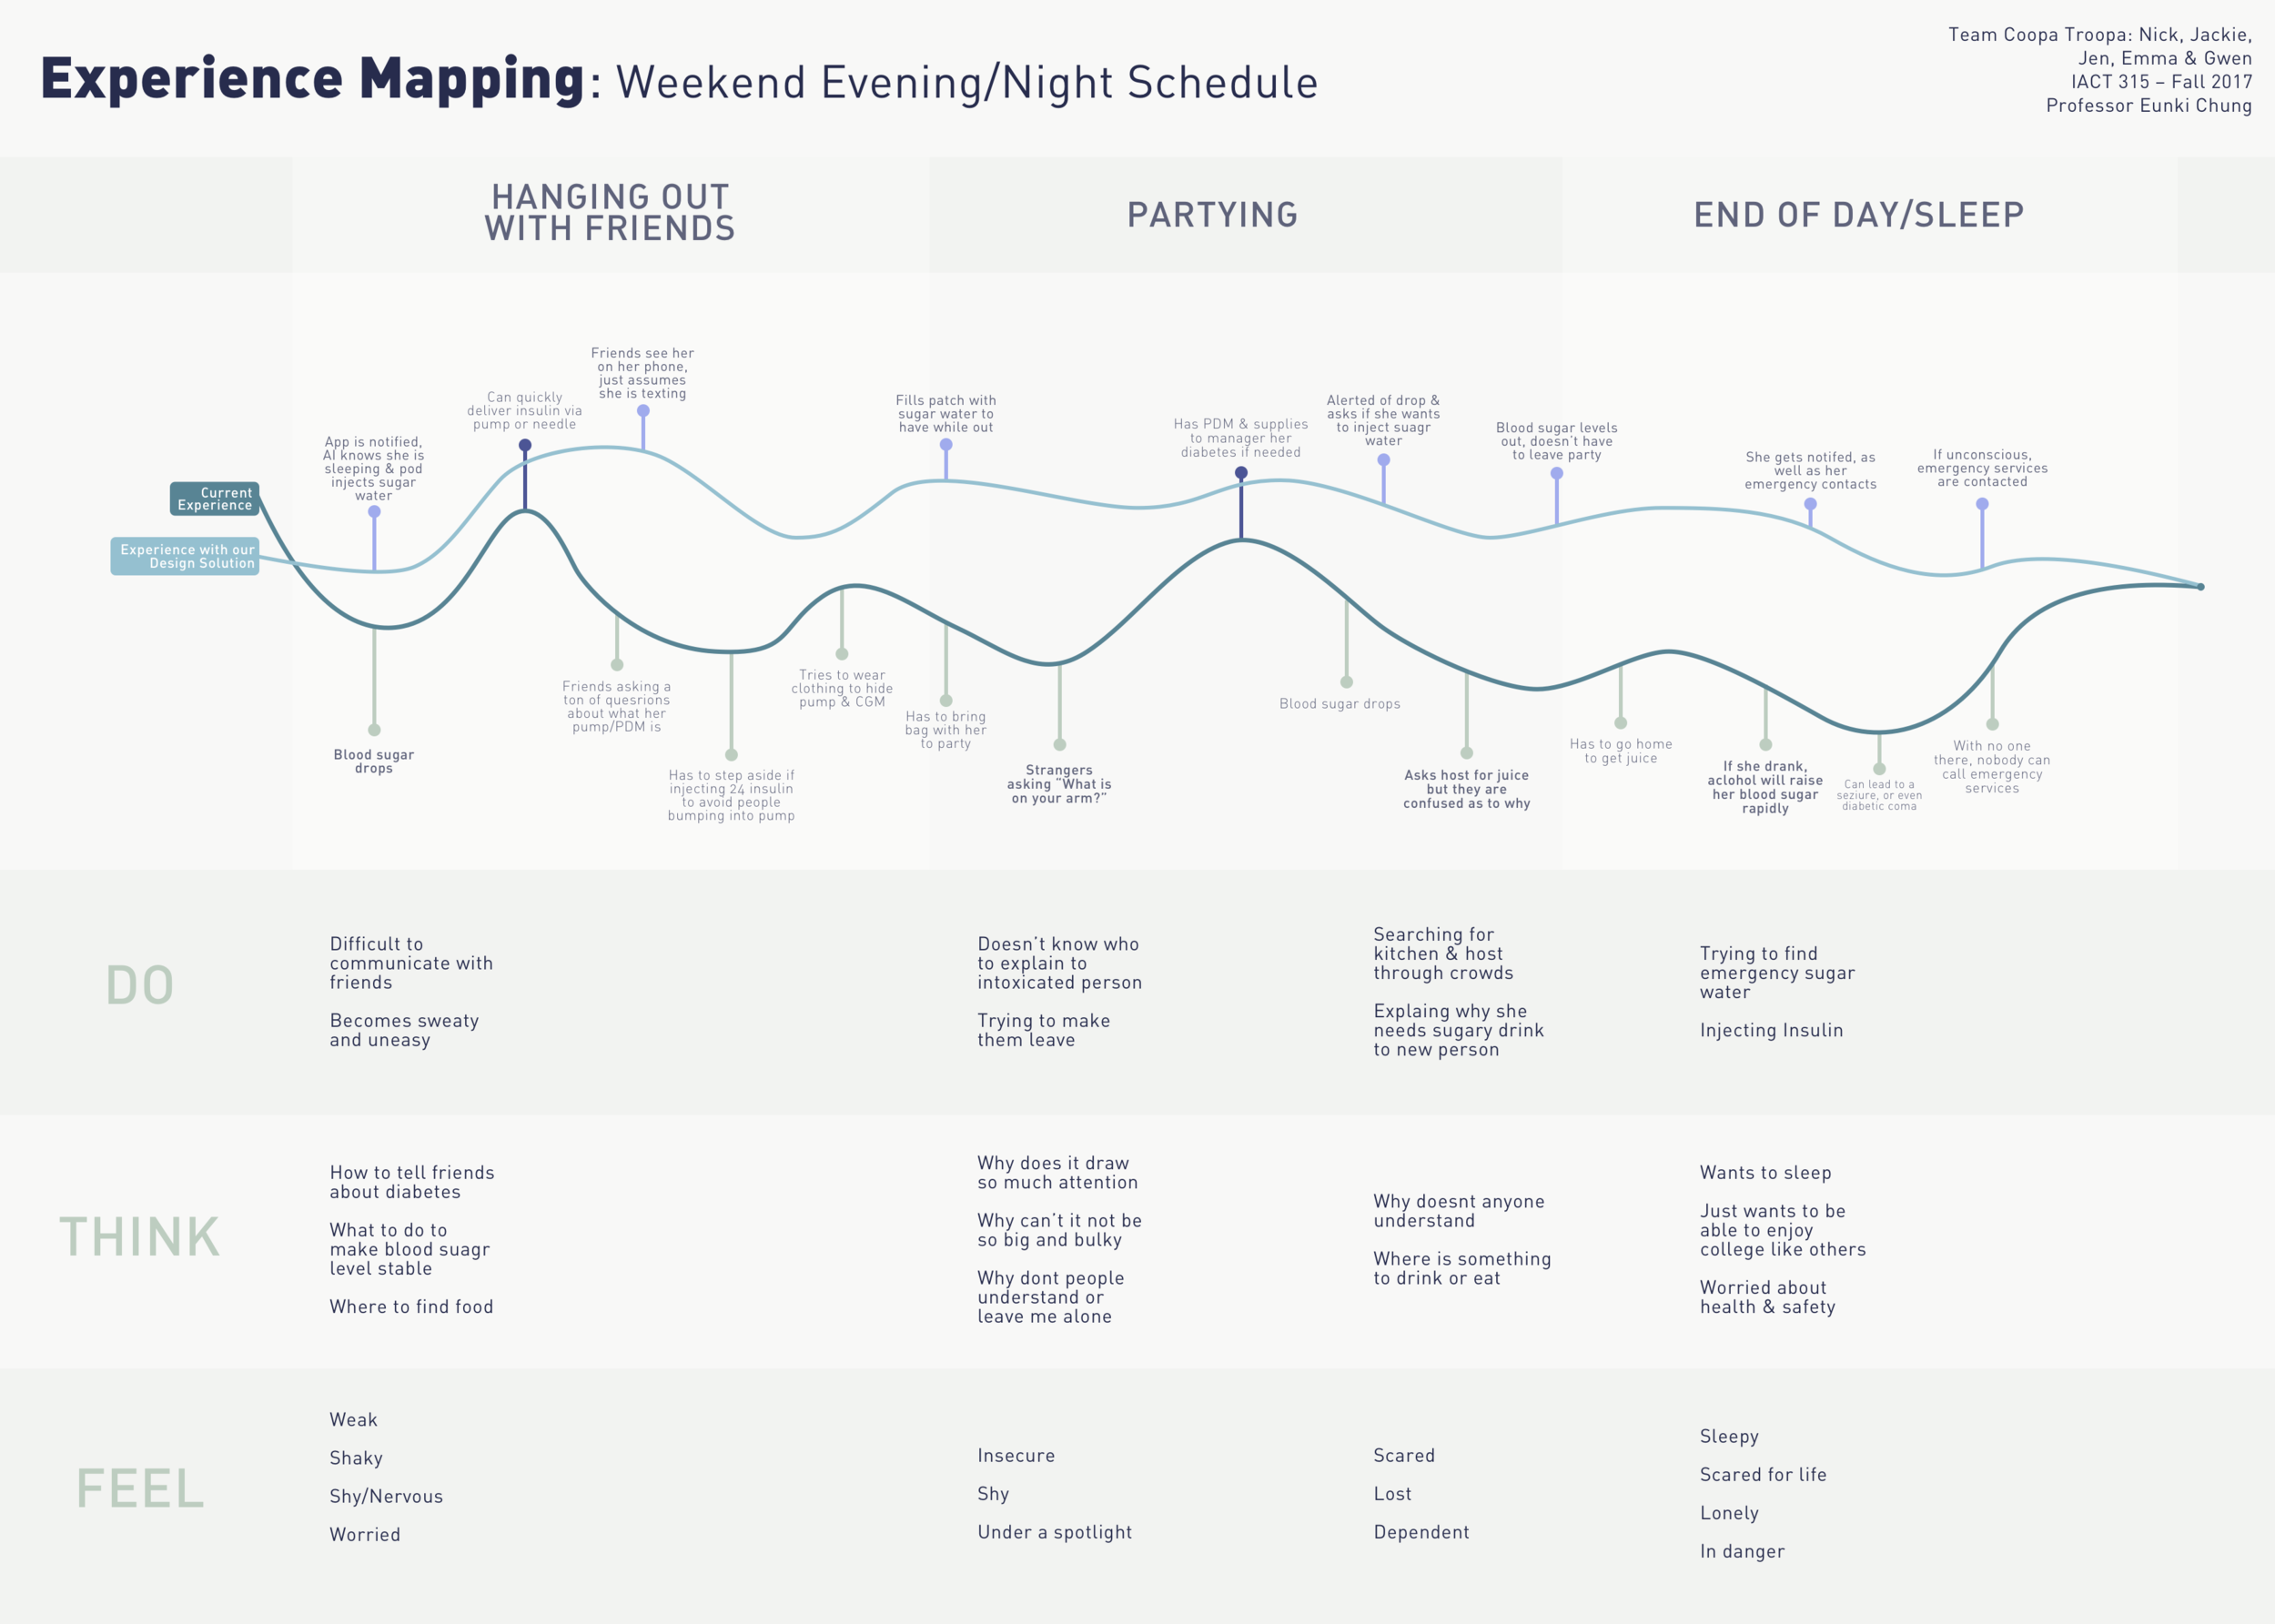 Weekend Schedule copy 2.png